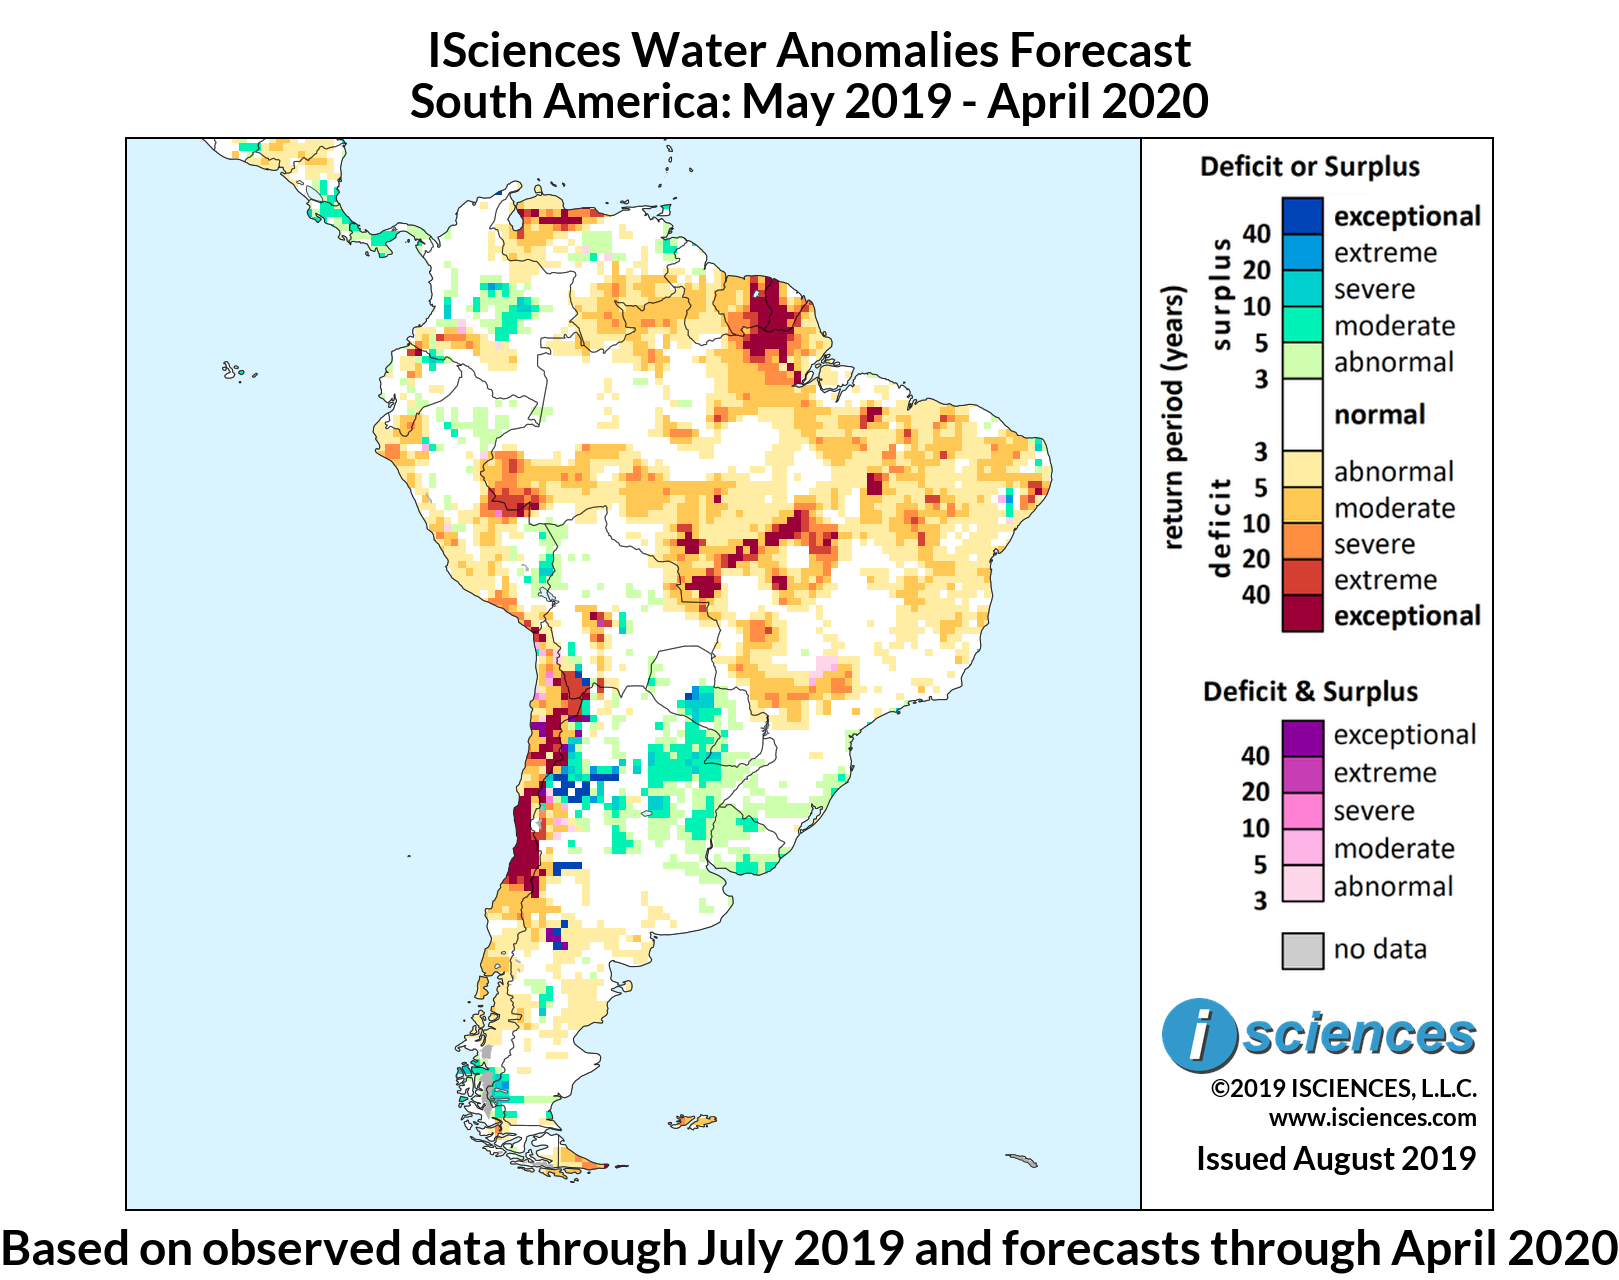 ISciences_South_America_Composite_Adjusted_201905-202004_12mo_panel.png